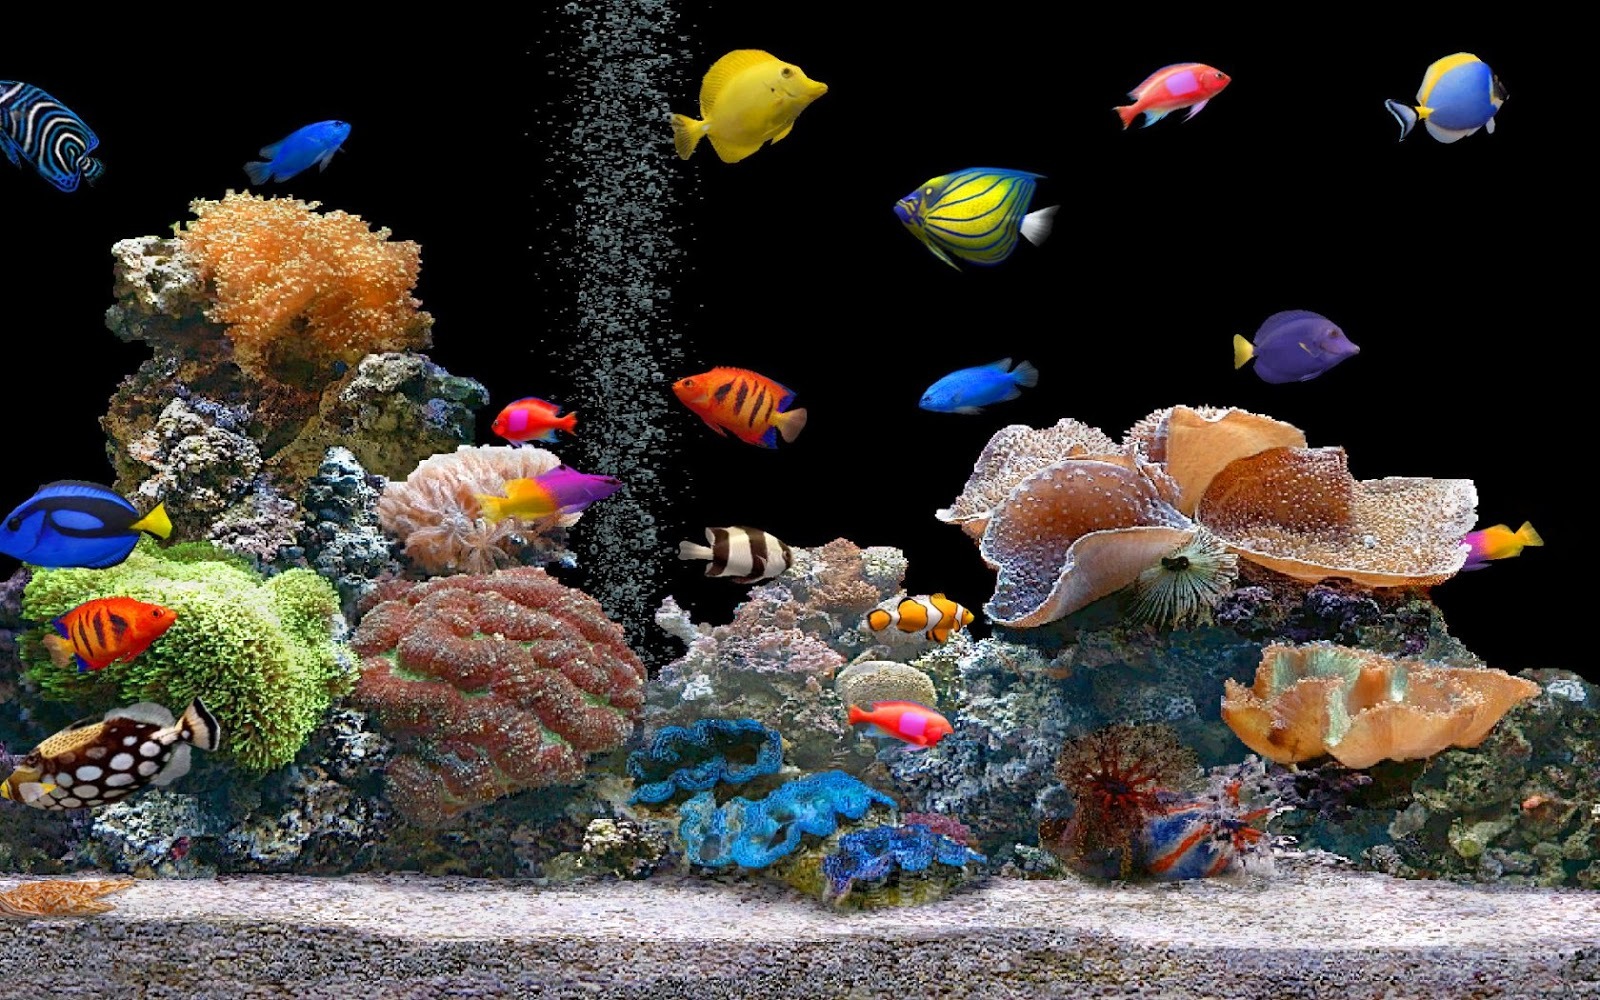 hd fish live wallpaper desktop hd fish moving backgrounds desktop hd 1600x1000